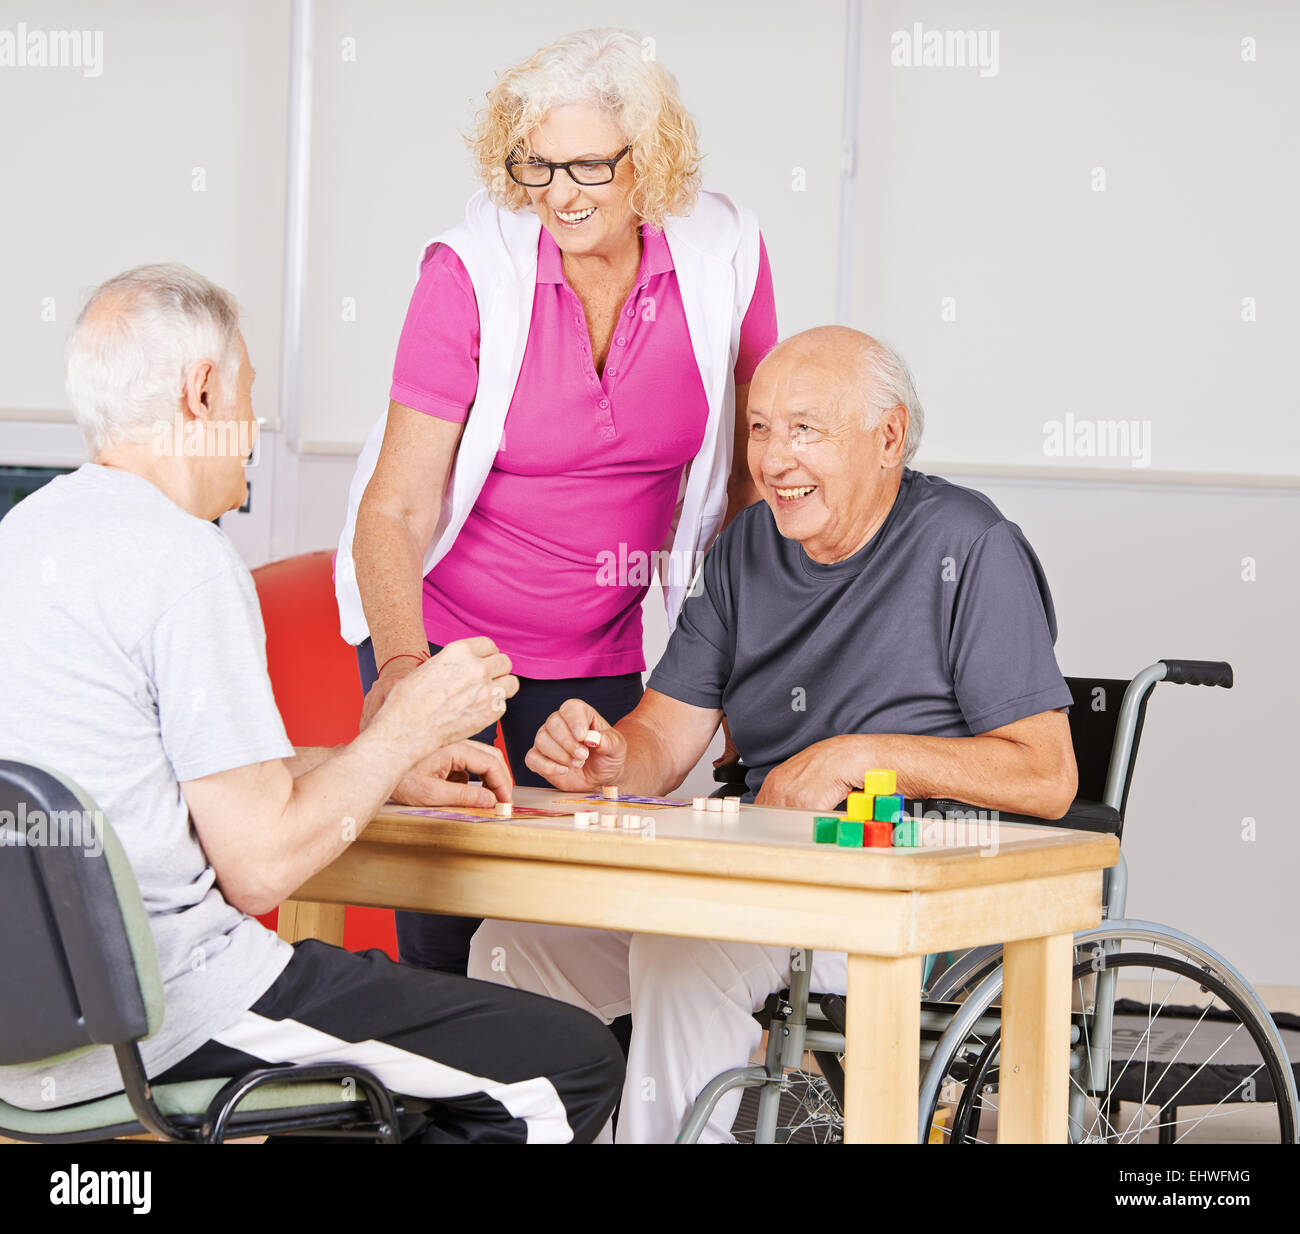 Happy senior people playing Bingo together in a nursing home - Stock Image